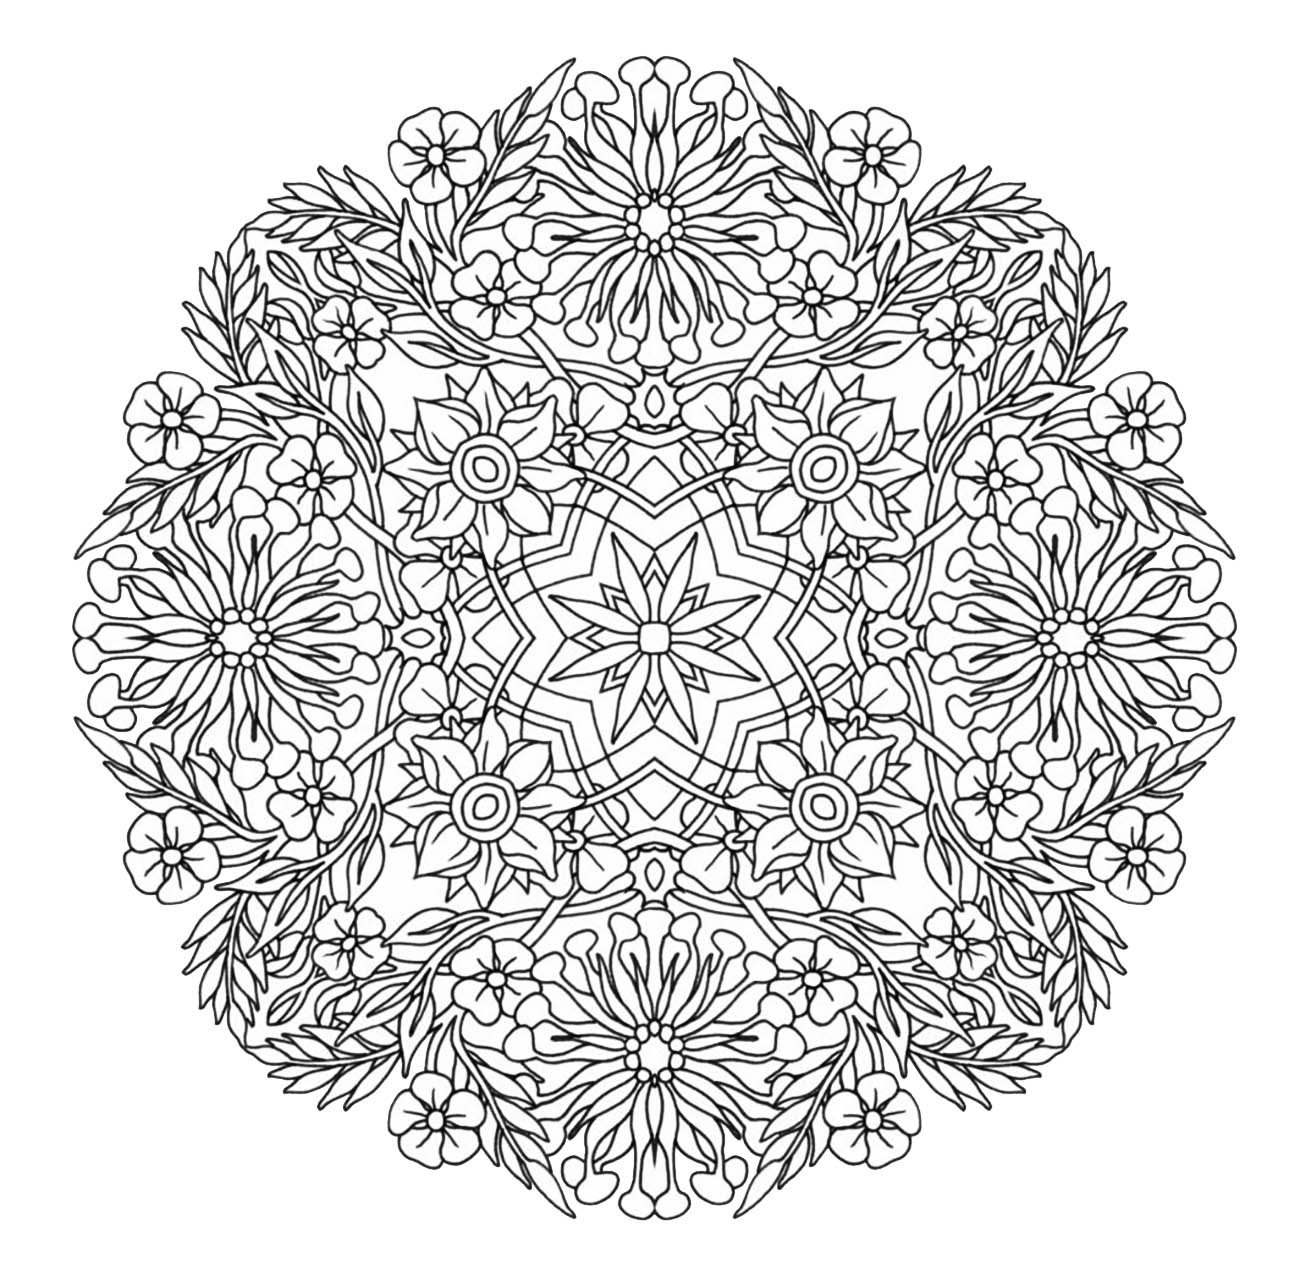 Mandala to download giant flowers with smart petals Giant coloring books for adults